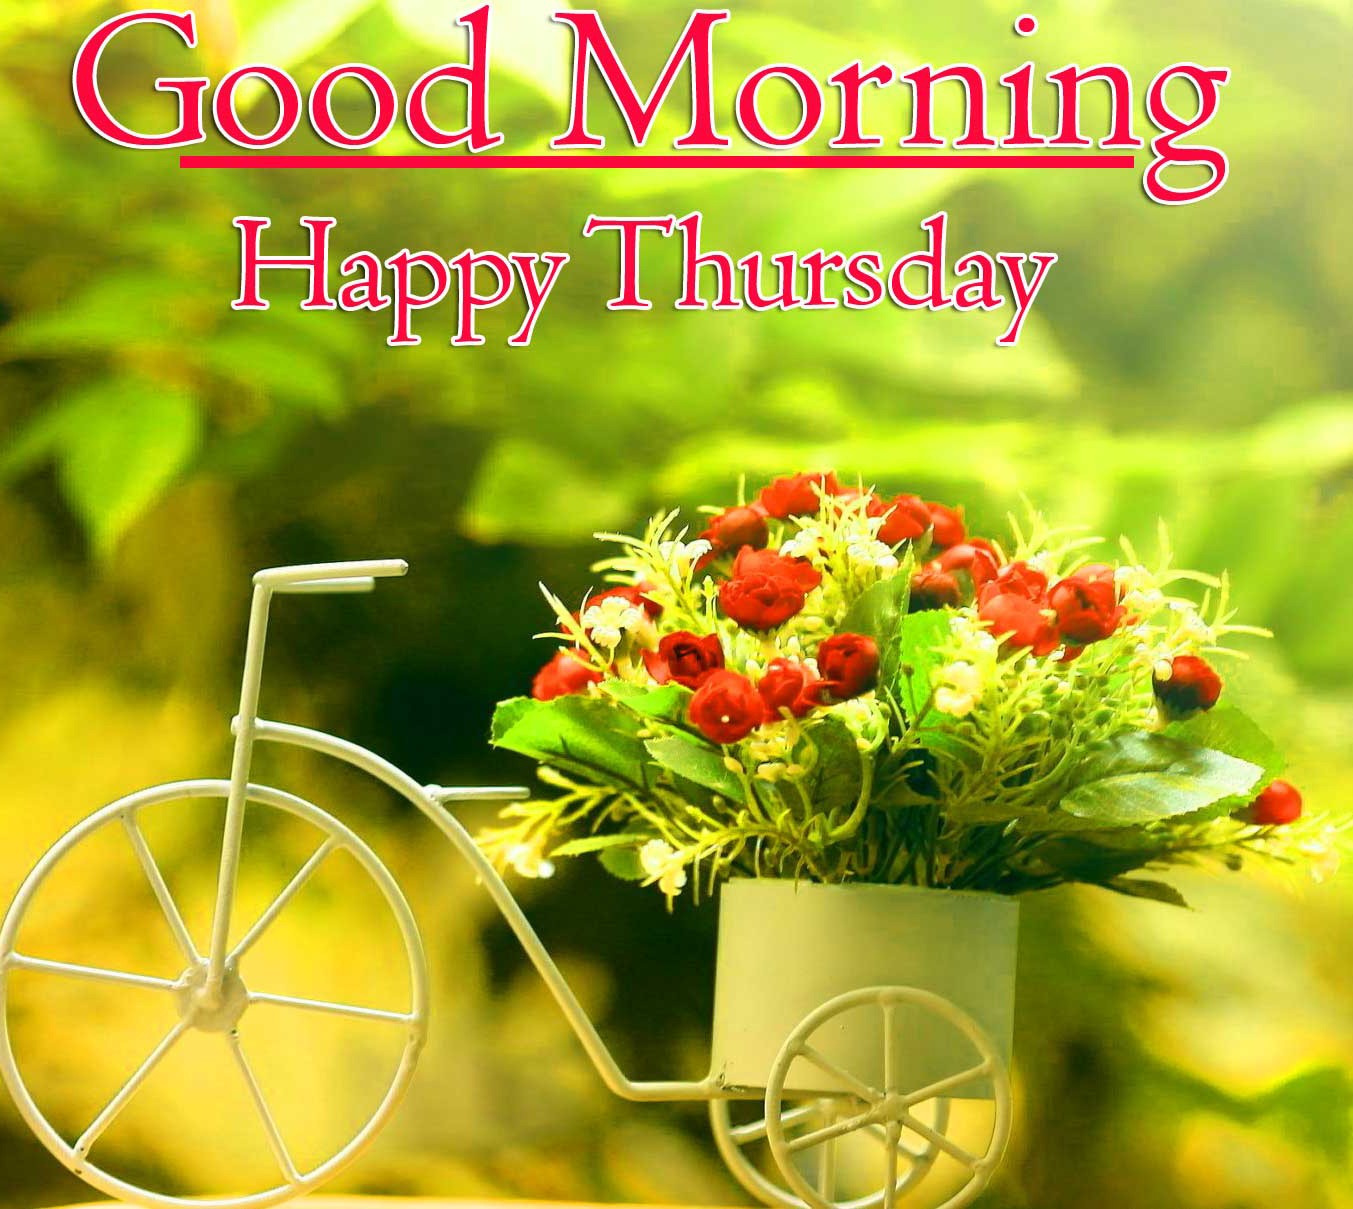 Sweet Flower Good Morning Thursday Images Pics Download